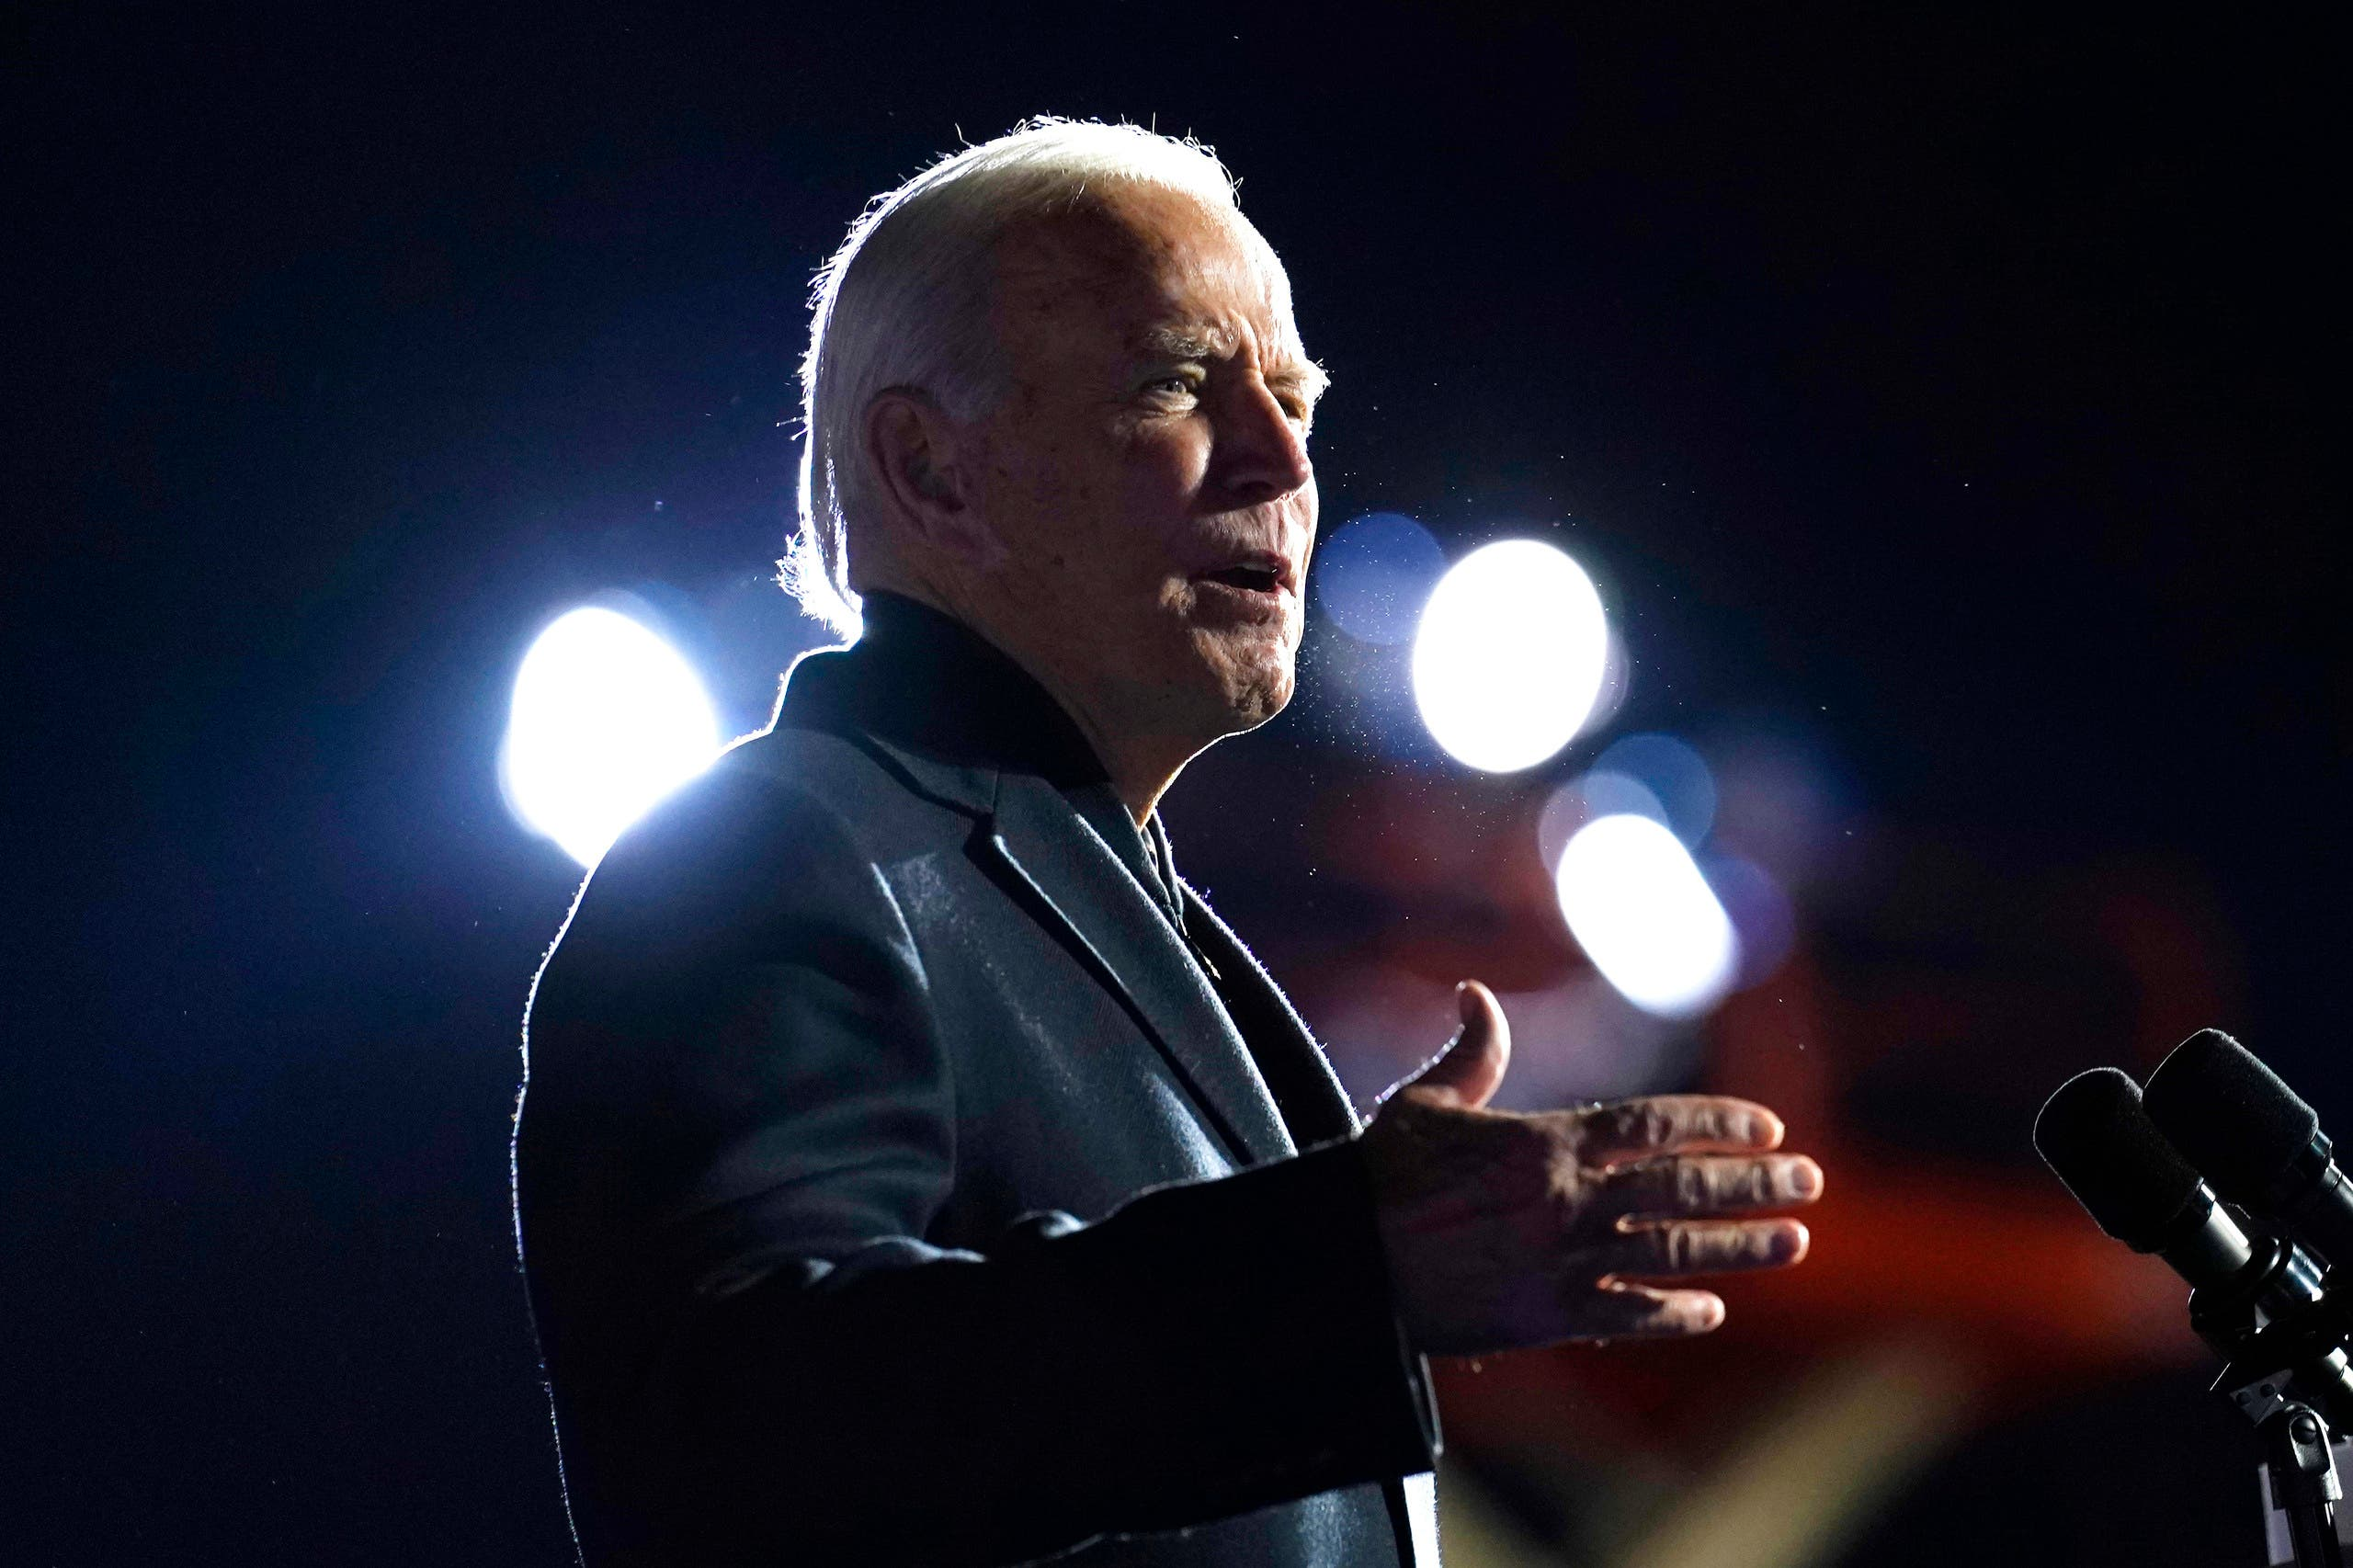 Democratic presidential candidate former Vice President Joe Biden speaks at a rally at Belle Isle Casino in Detroit, Mich., Saturday, Oct. 31, 2020. (AP)